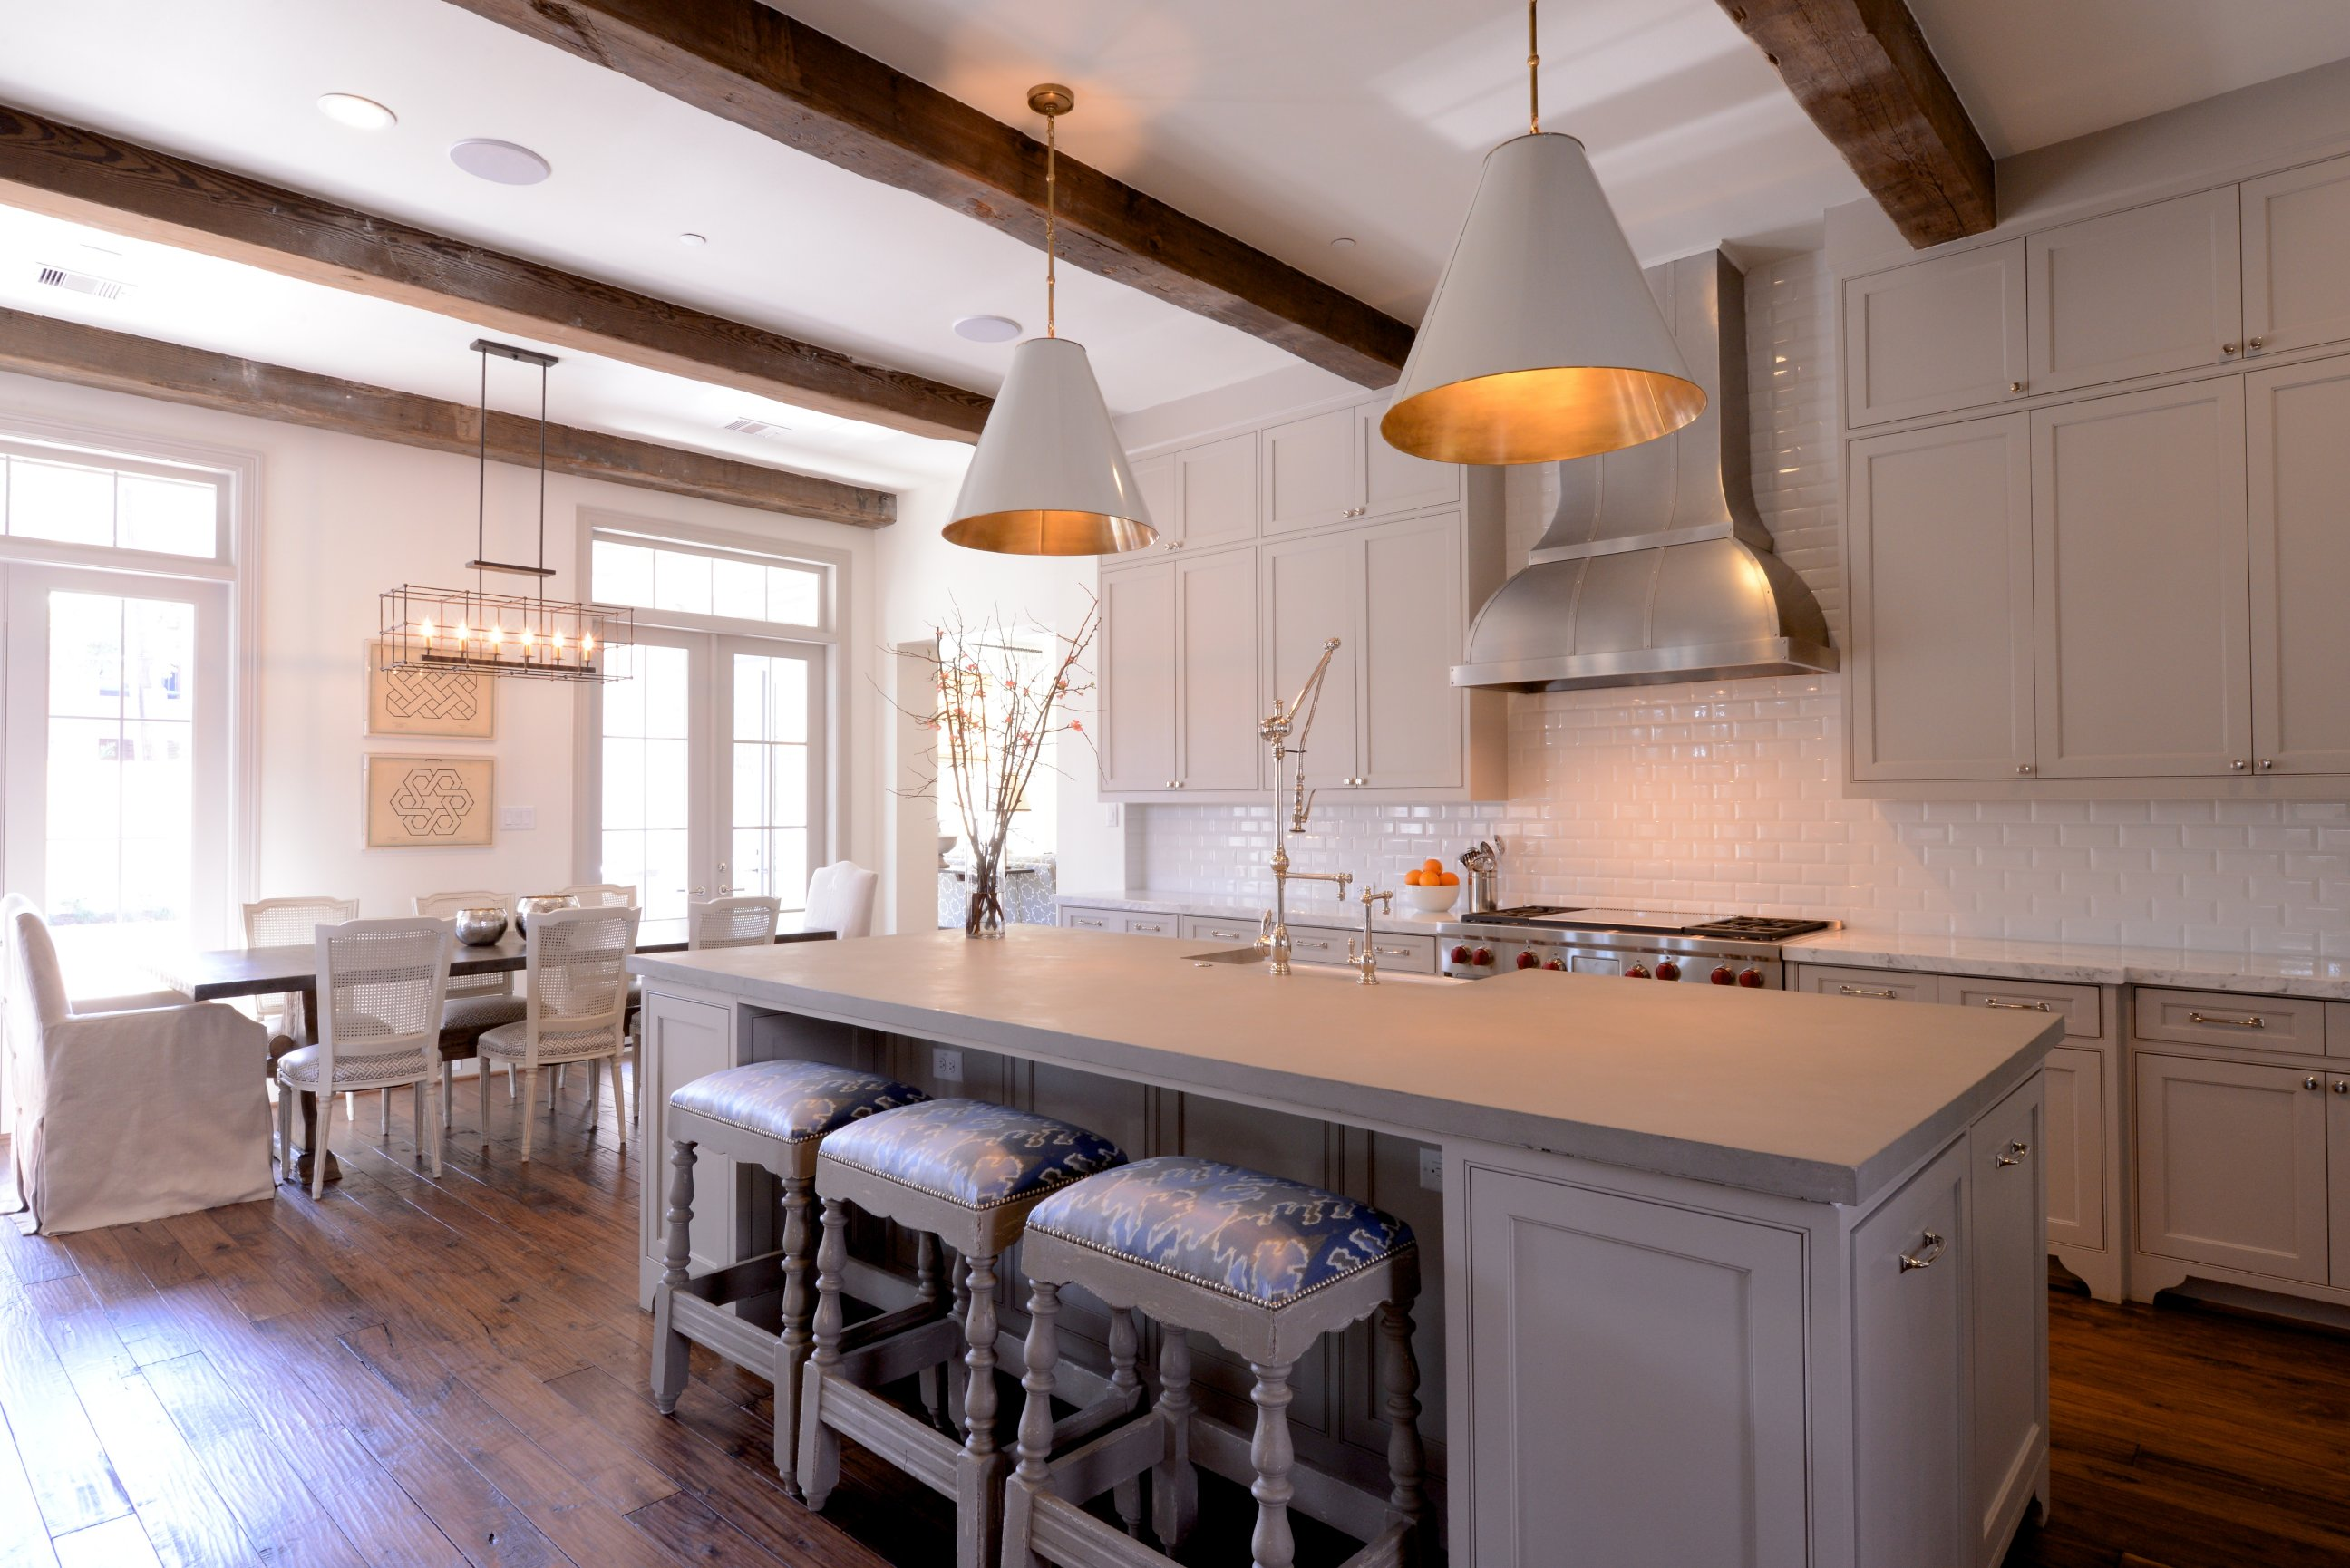 amazing kitchen interiors images with kitchen interiors